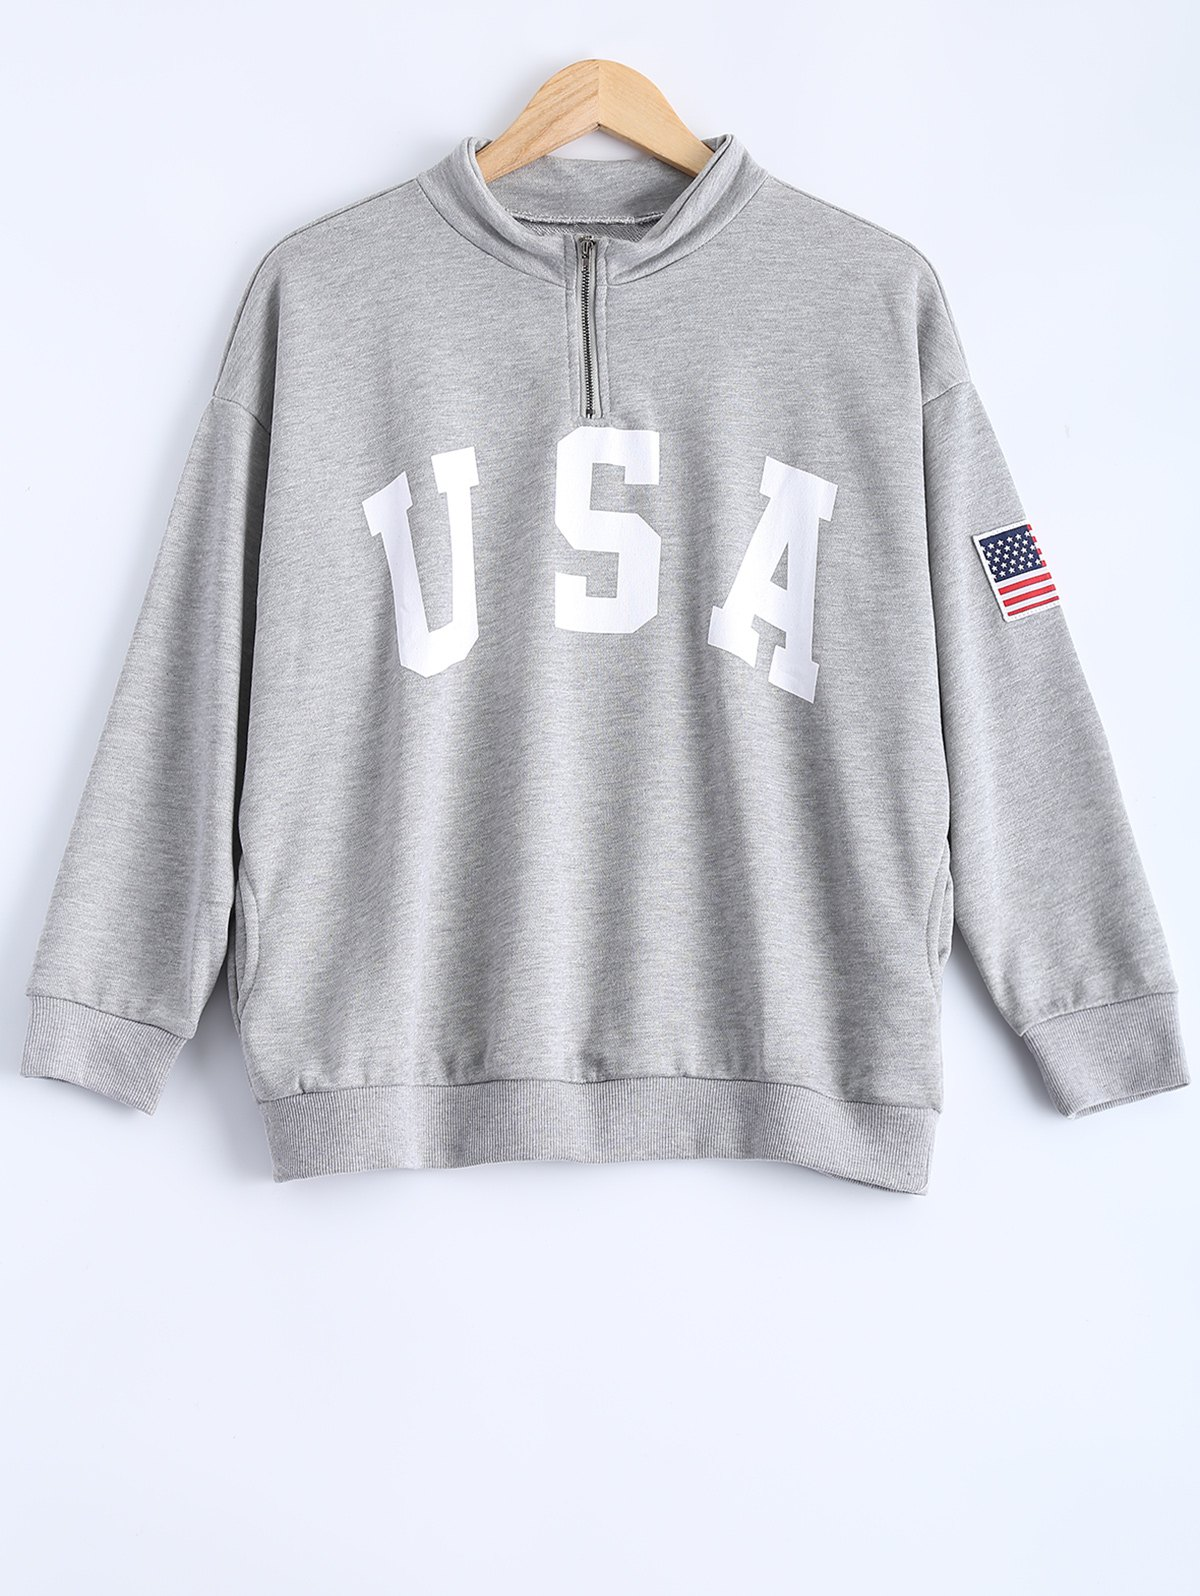 Loose Letter and Flag Applique Zipper Sweatshirt cut and sew letter embroidered applique tee